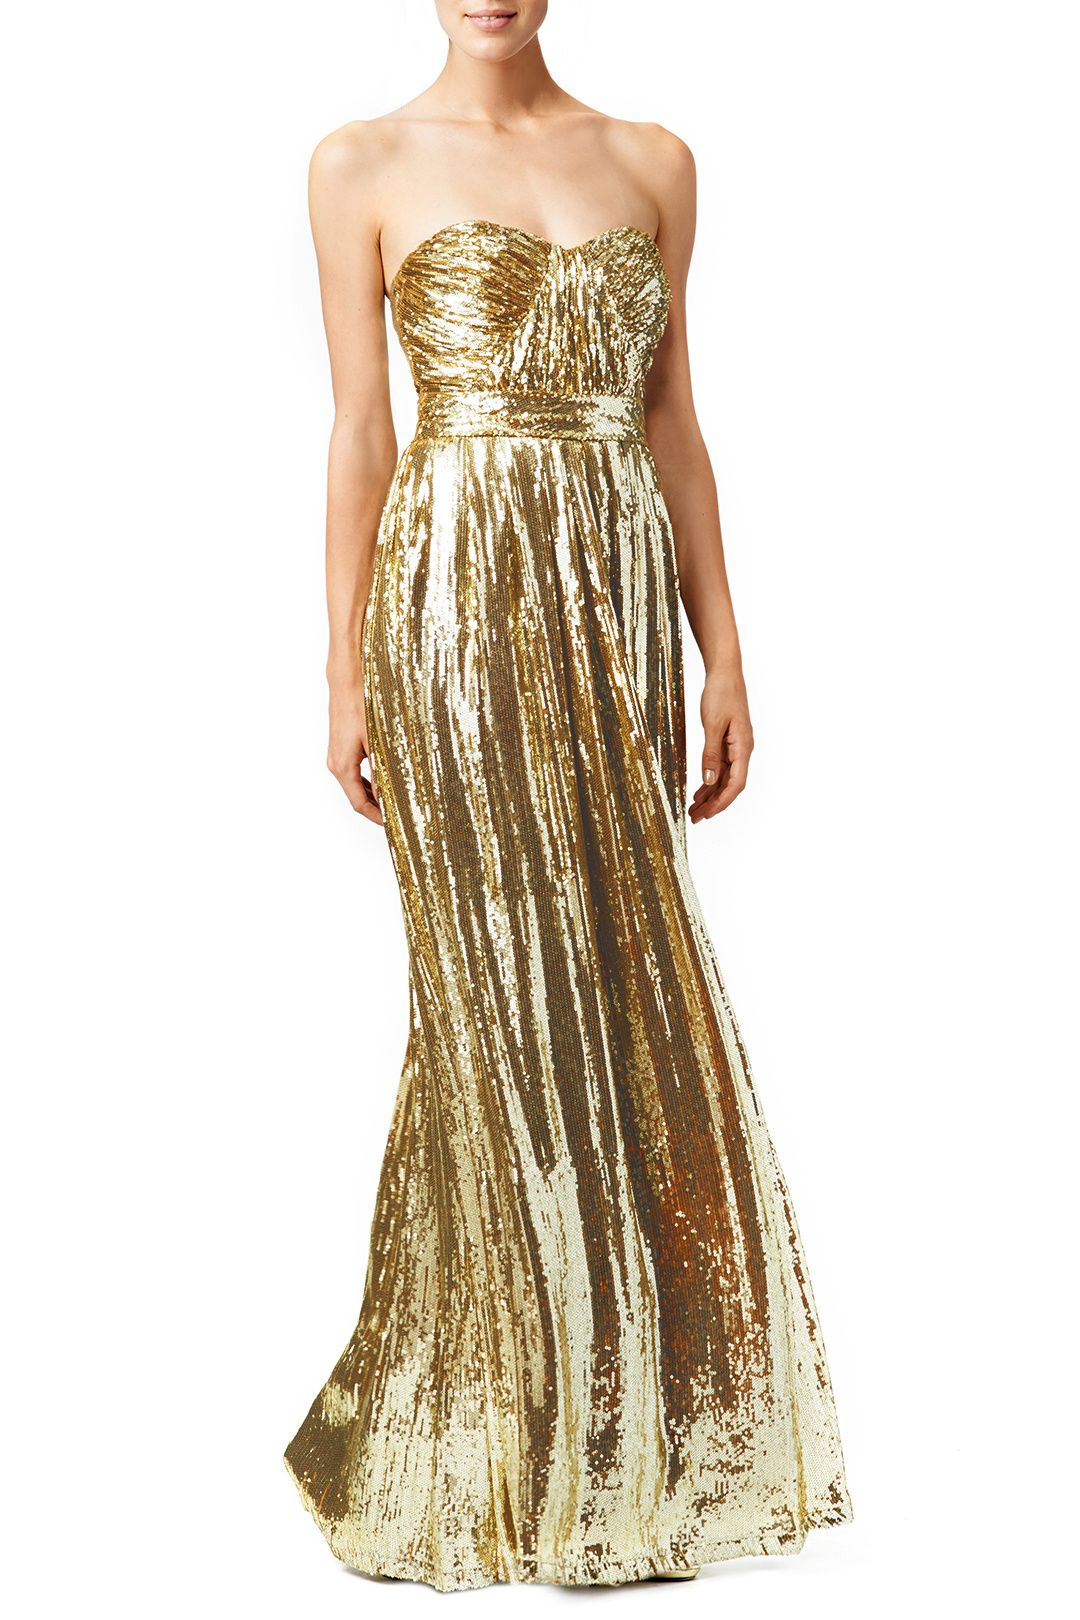 Screen siren gown badgley mischka sirens and gowns